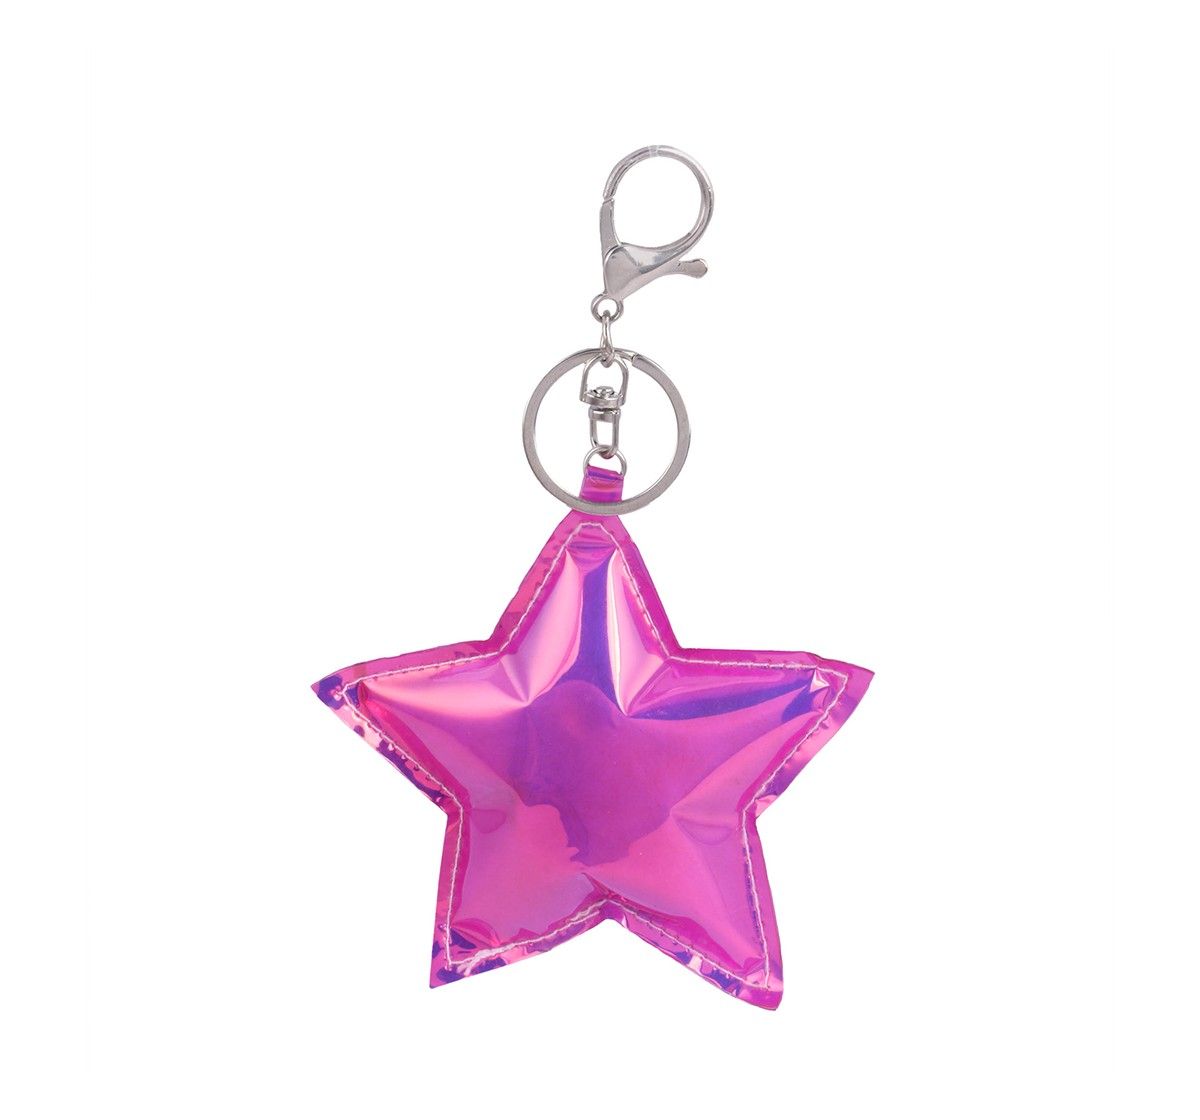 Hamster London Star Keychain for Girls age 3Y+ (Pink)